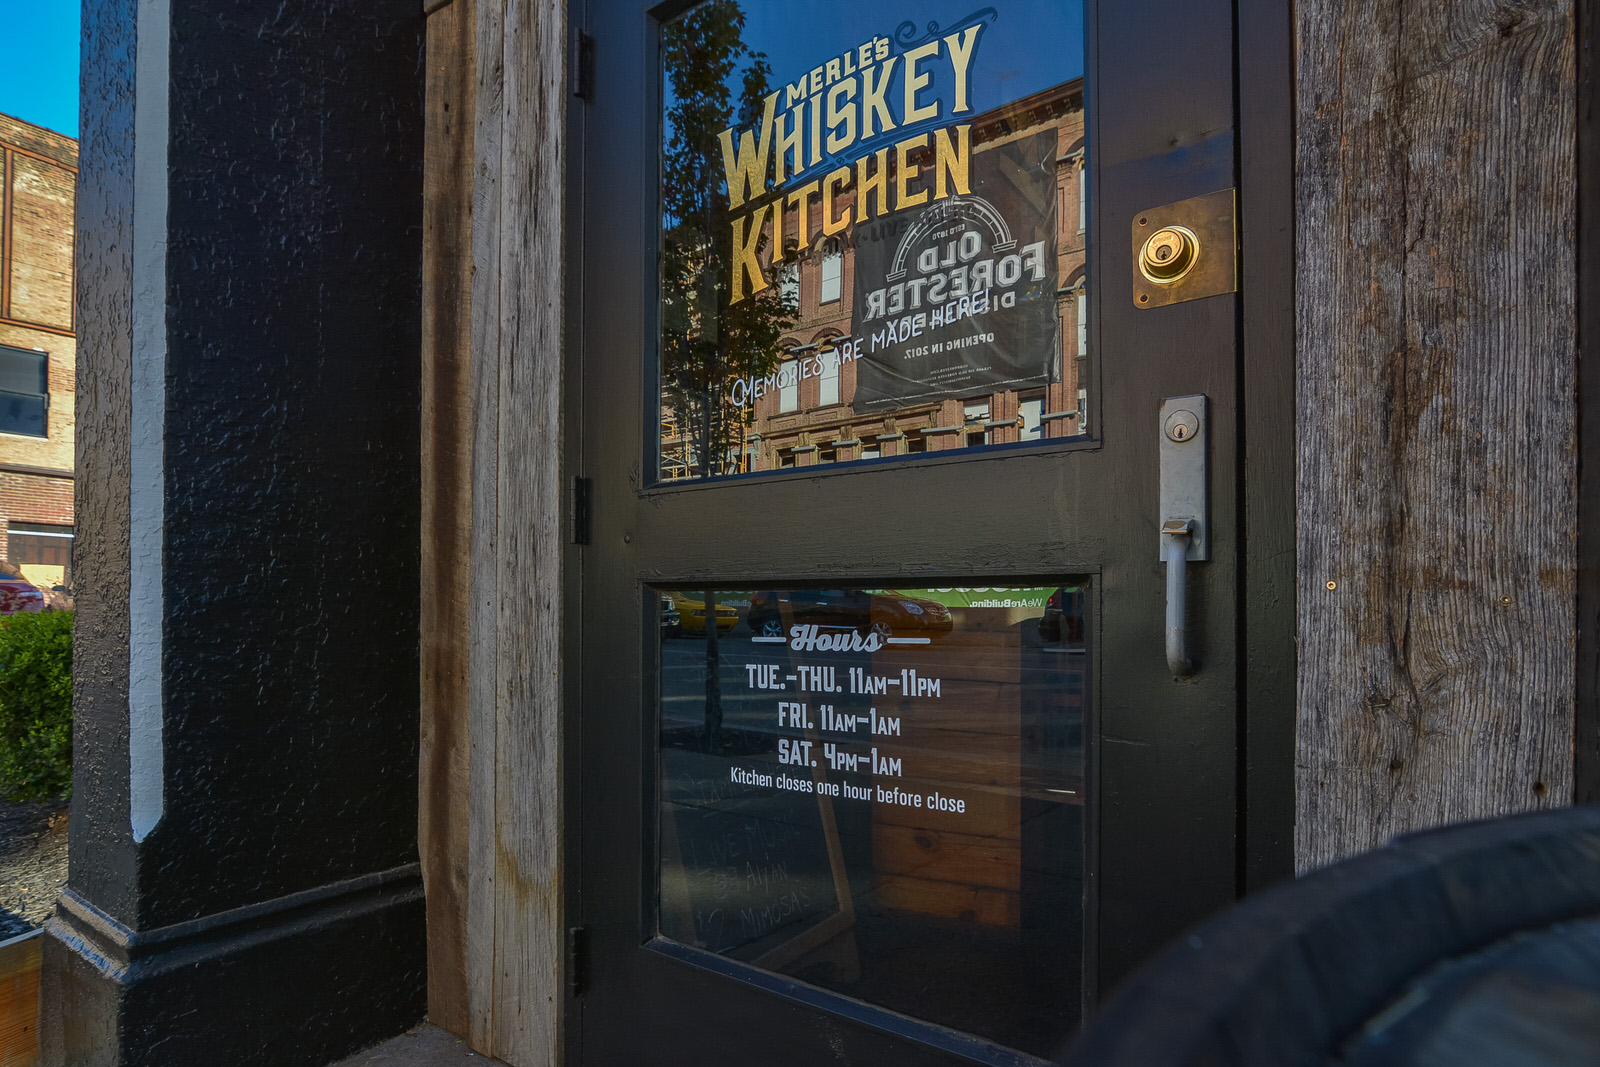 merles-whisky-kitchen-party-building-123 | Manny & Merle ...